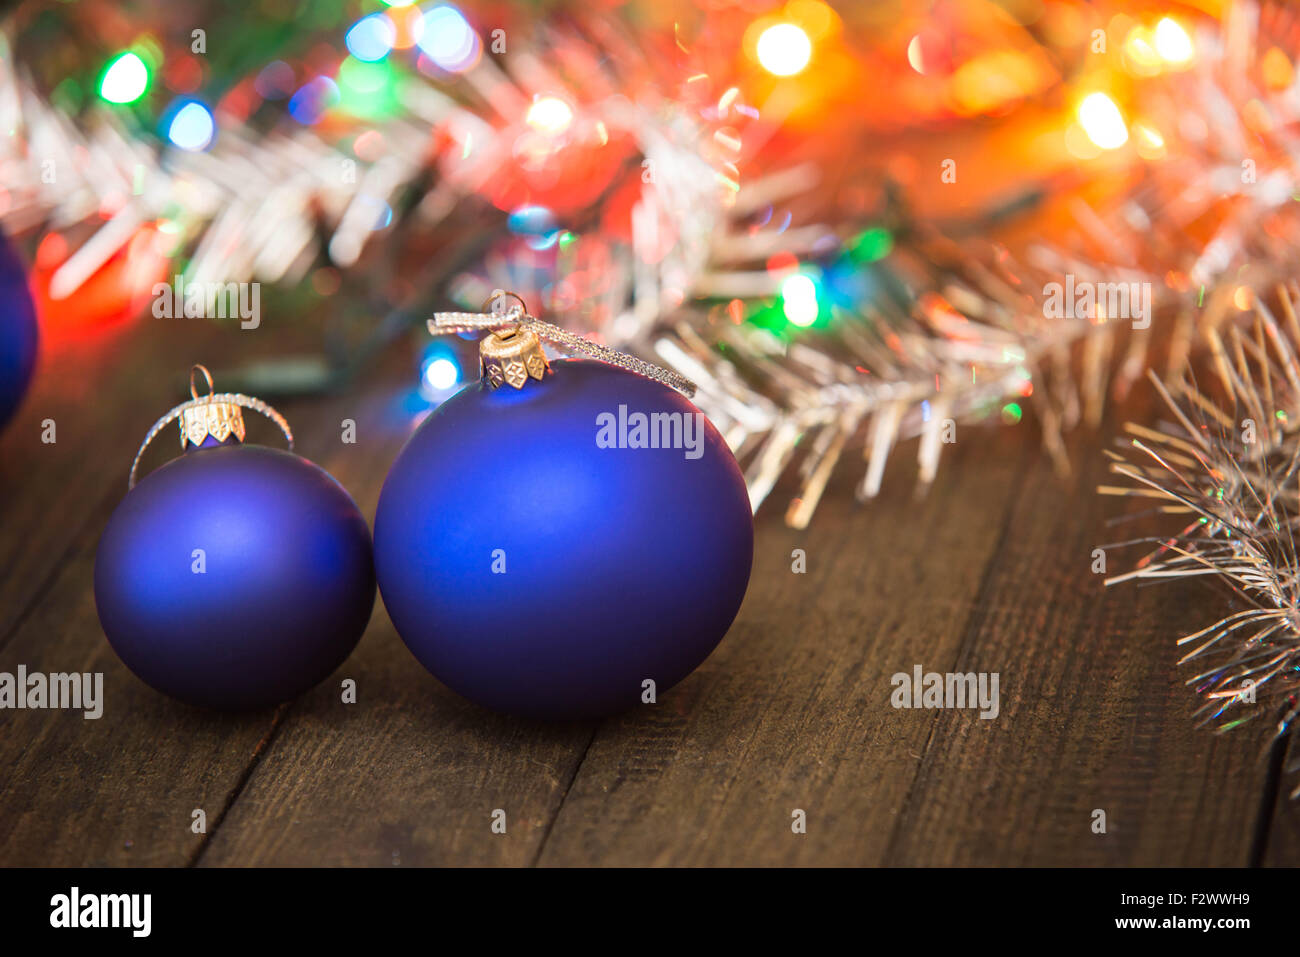 Christmas decorations - Stock Image